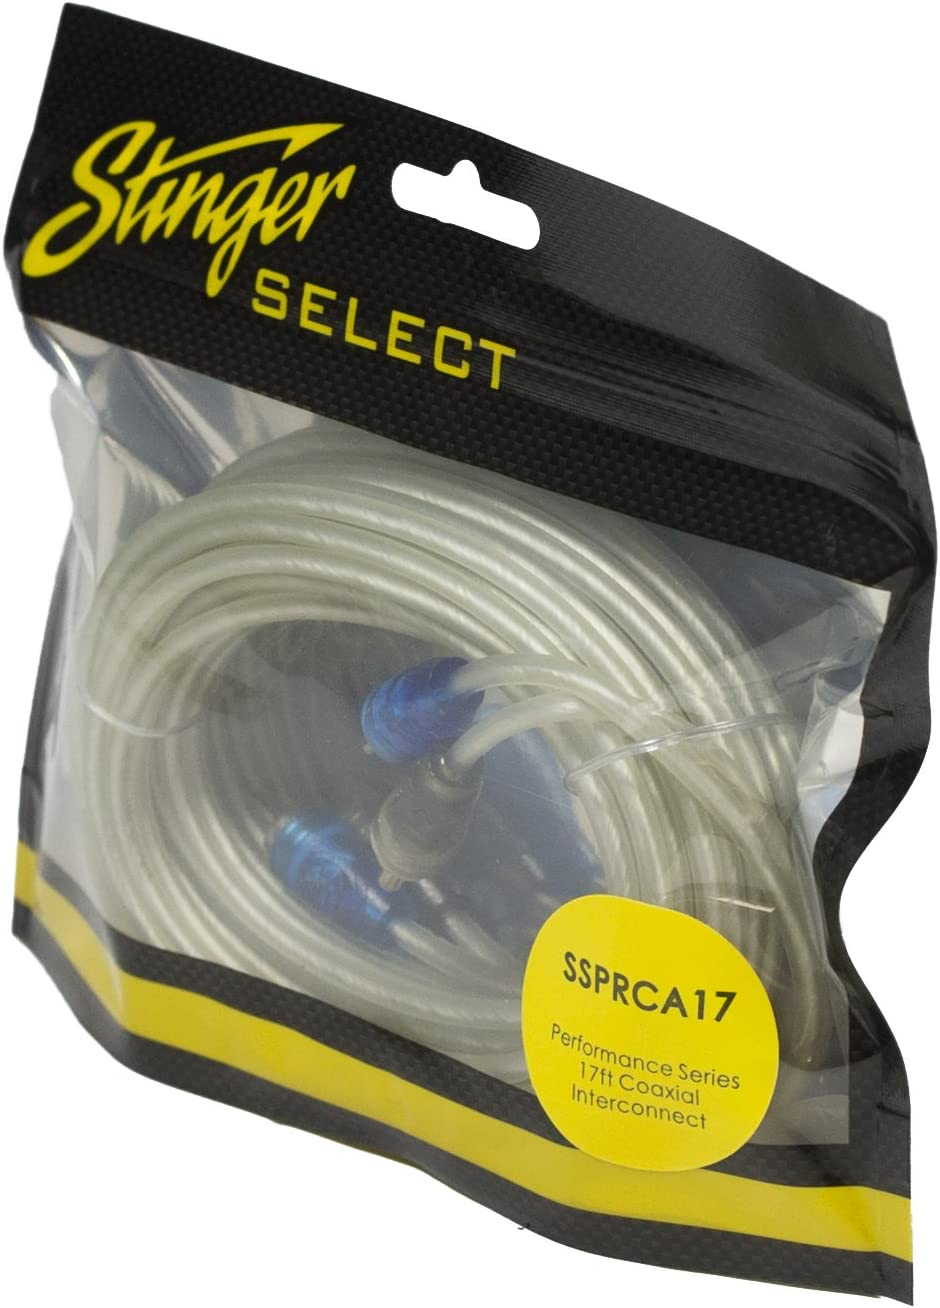 Stinger Select SSPRCA3 Performance Series 3 Coaxial Interconnect